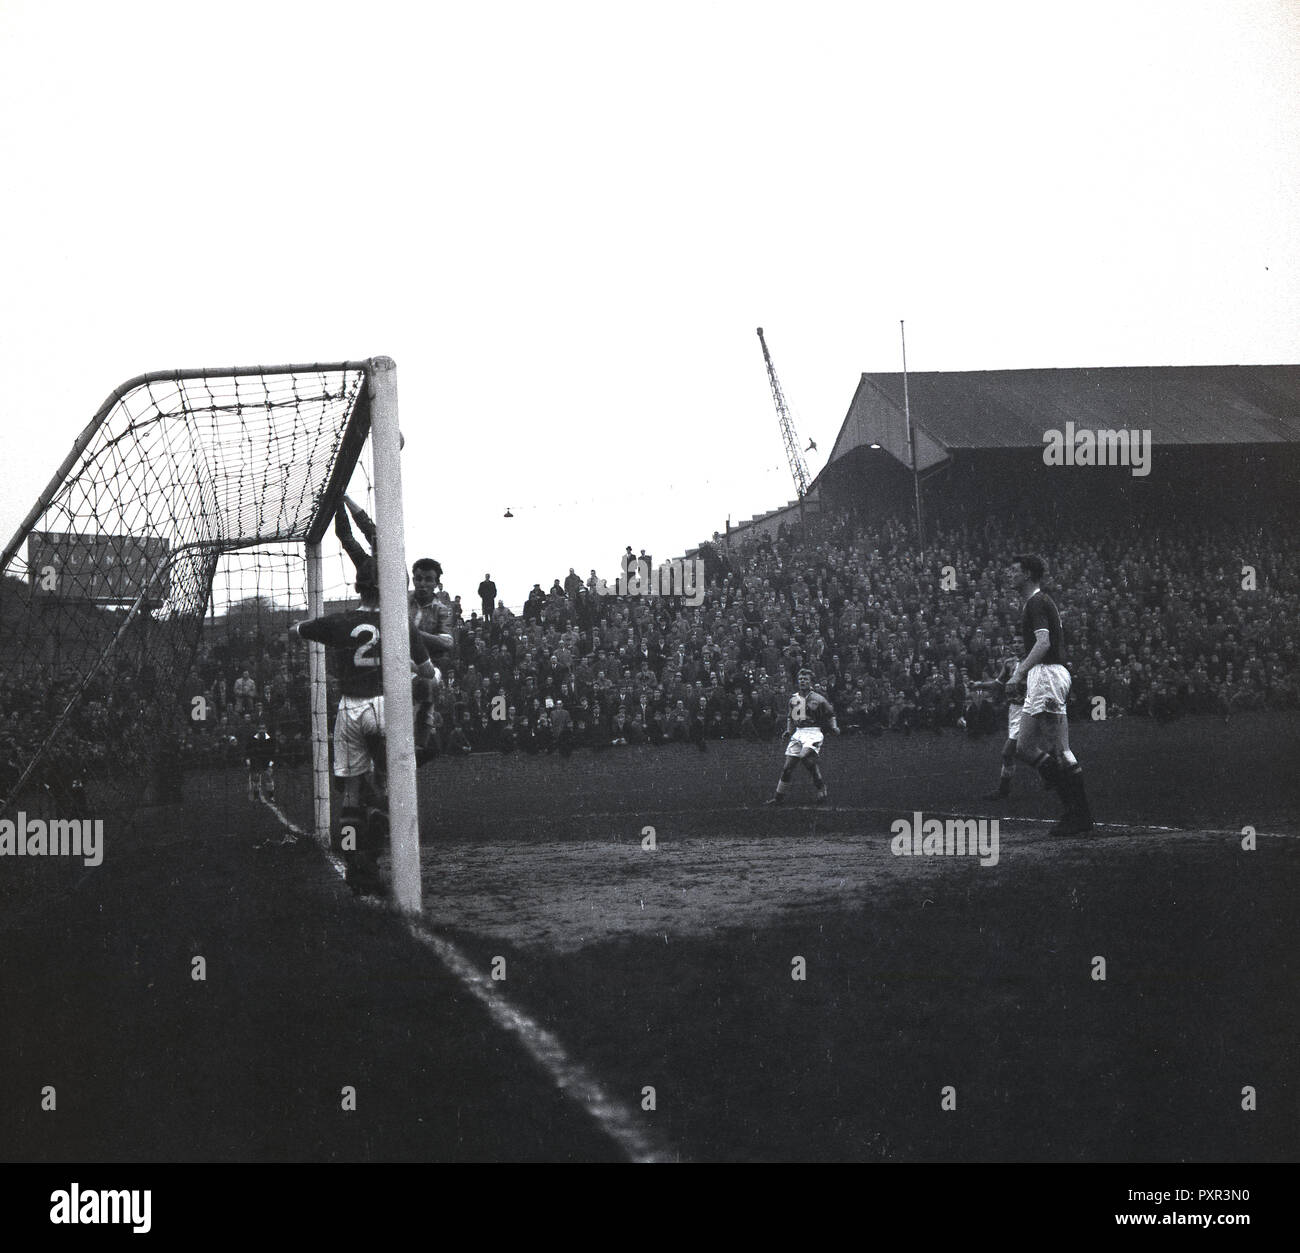 1950s, historical, goalmouth action at a football match taking place at the Old Den, New Cross, London SE14, the home of Millwall FC, established in 1885. The large ground which opened in 1910 and while in use was known as 'The Den', could take 47,000 spectators, with over 43,000 of these standing. - Stock Image